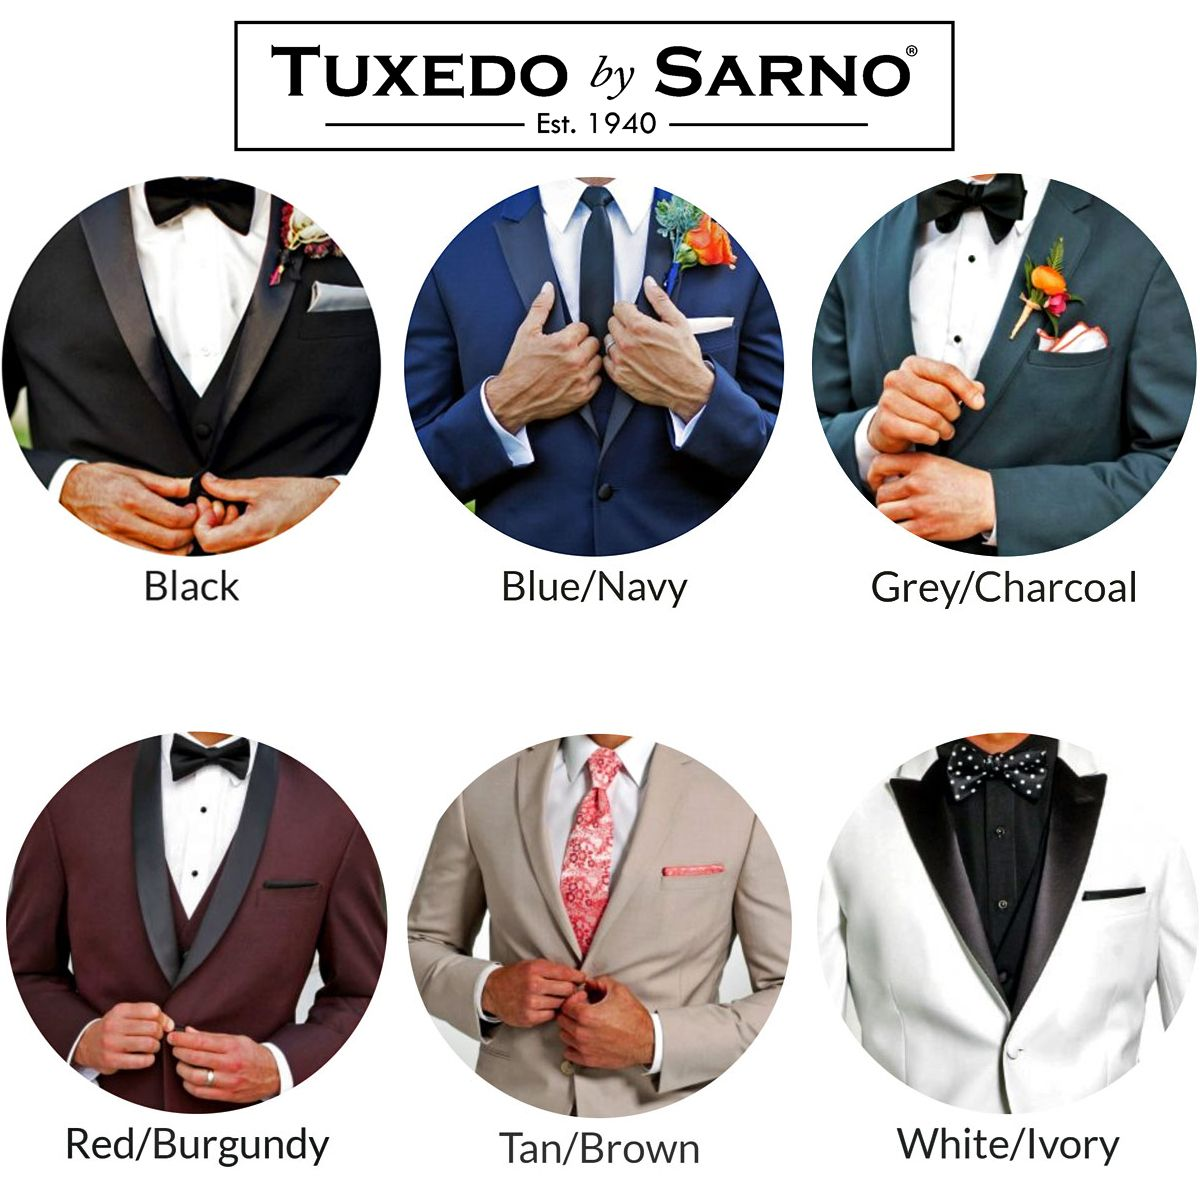 Idea Casa Full Sarno tuxedo by sarno has the largest selection of tuxedos and